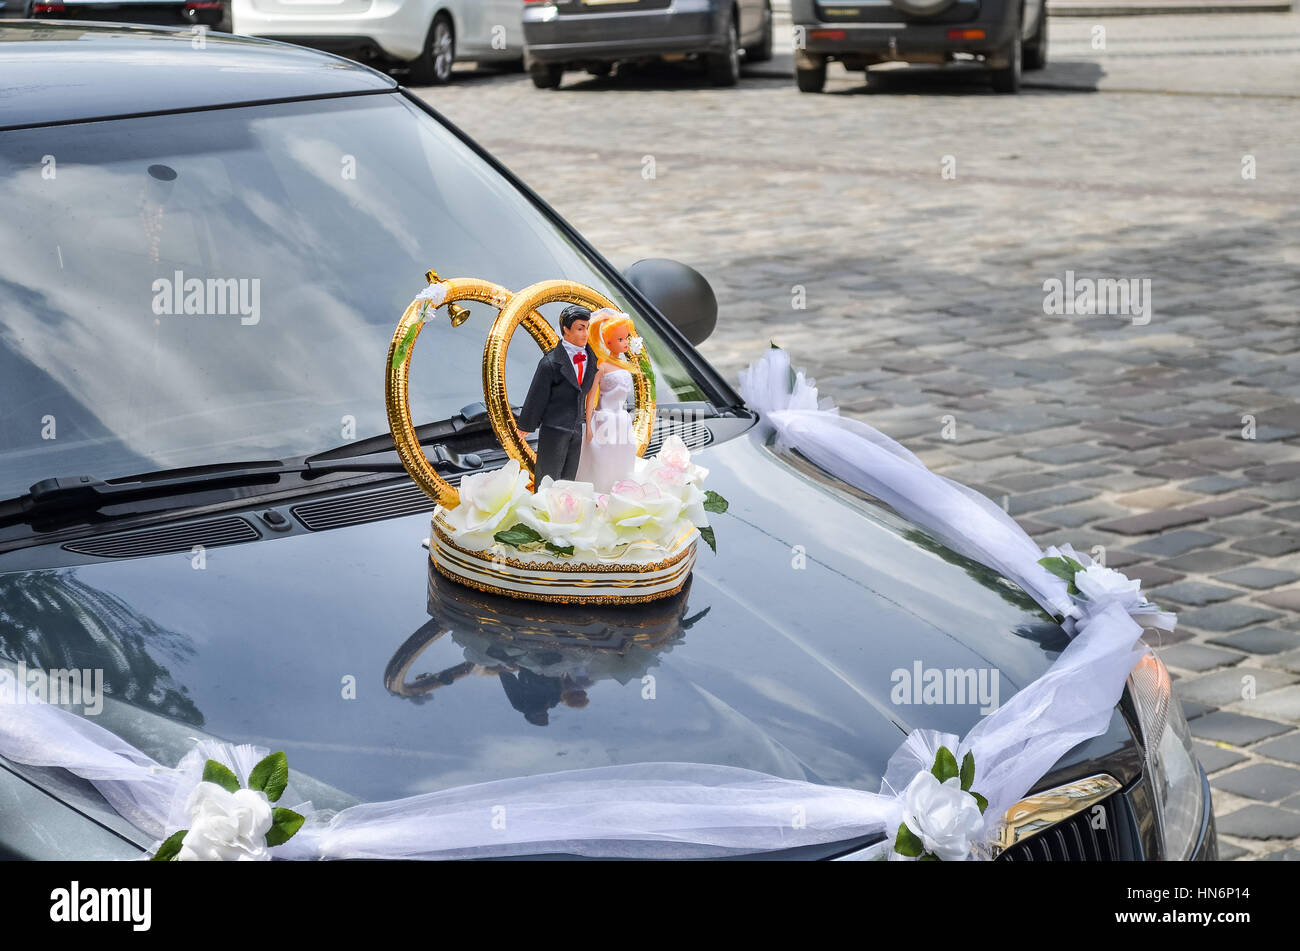 Wedding decoration on car with bride and groom stock photo wedding decoration on car with bride and groom junglespirit Gallery